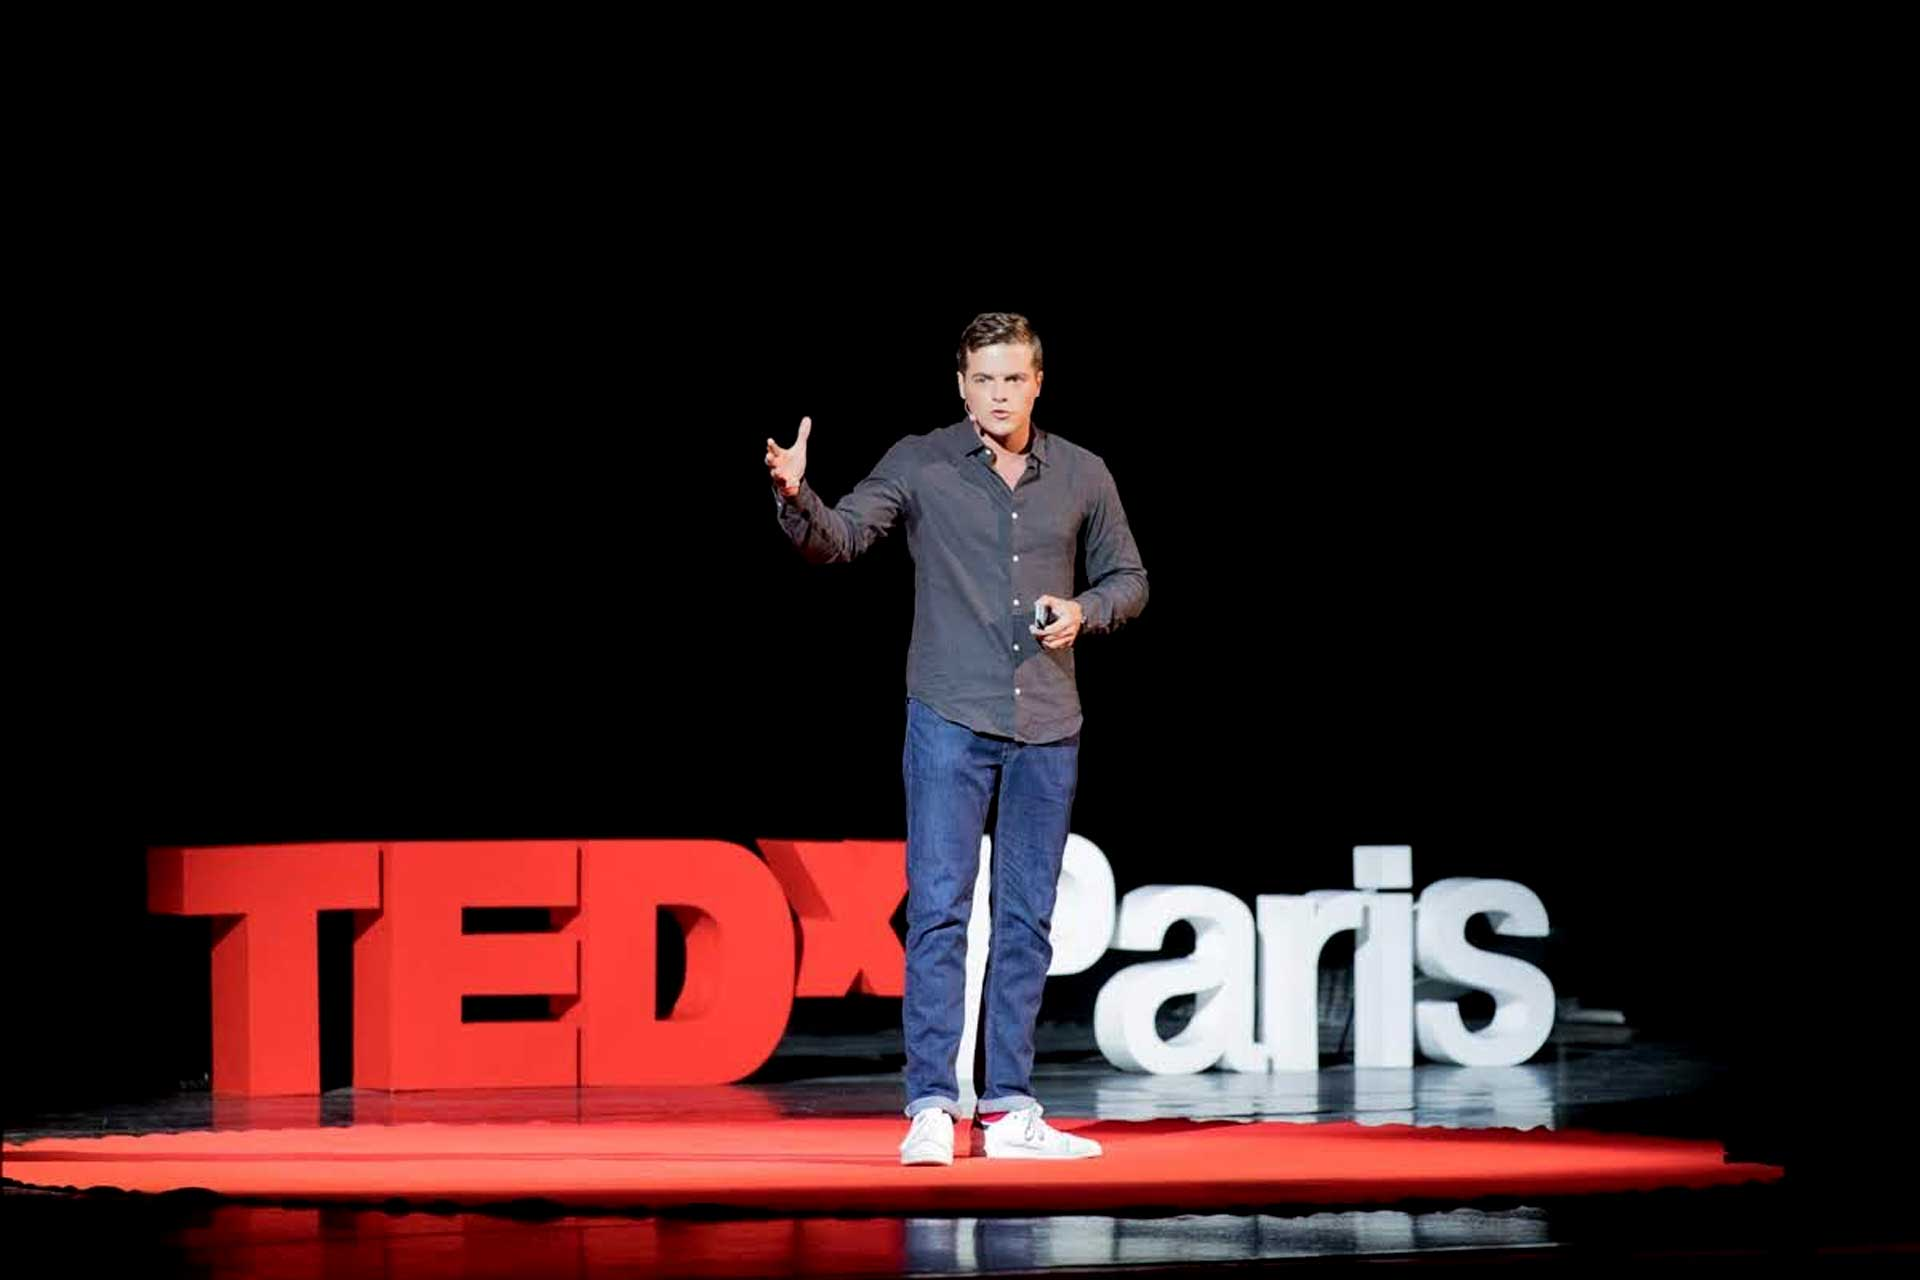 conference-TEDxParis-2017-14.jpg